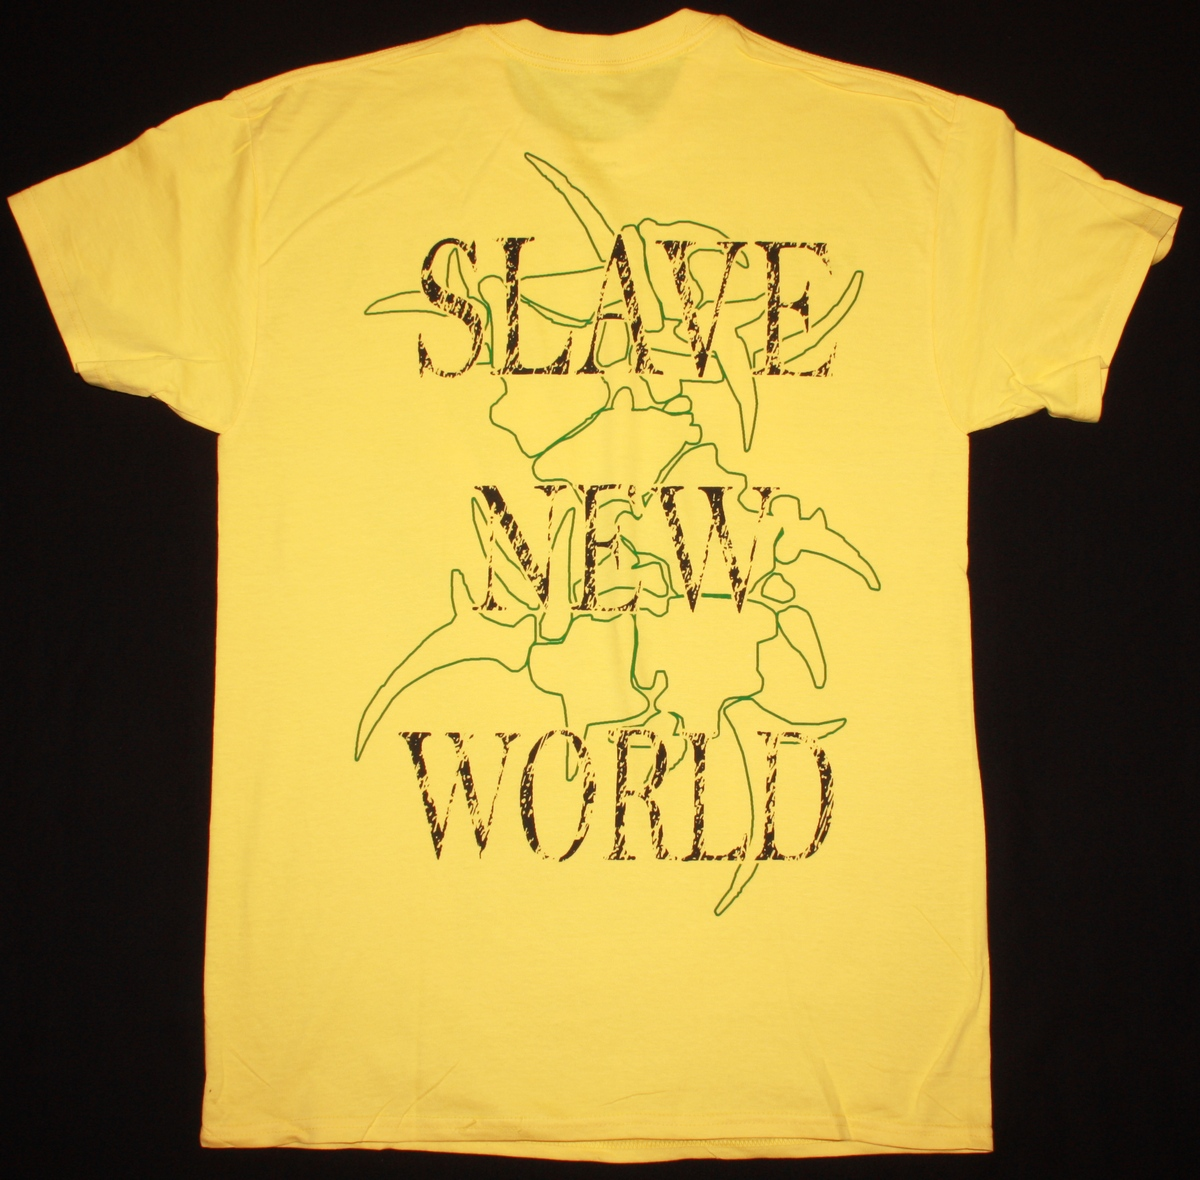 SEPULTURA SLAVE NEW WORLD'93 NEW YELLOW T-SHIRT